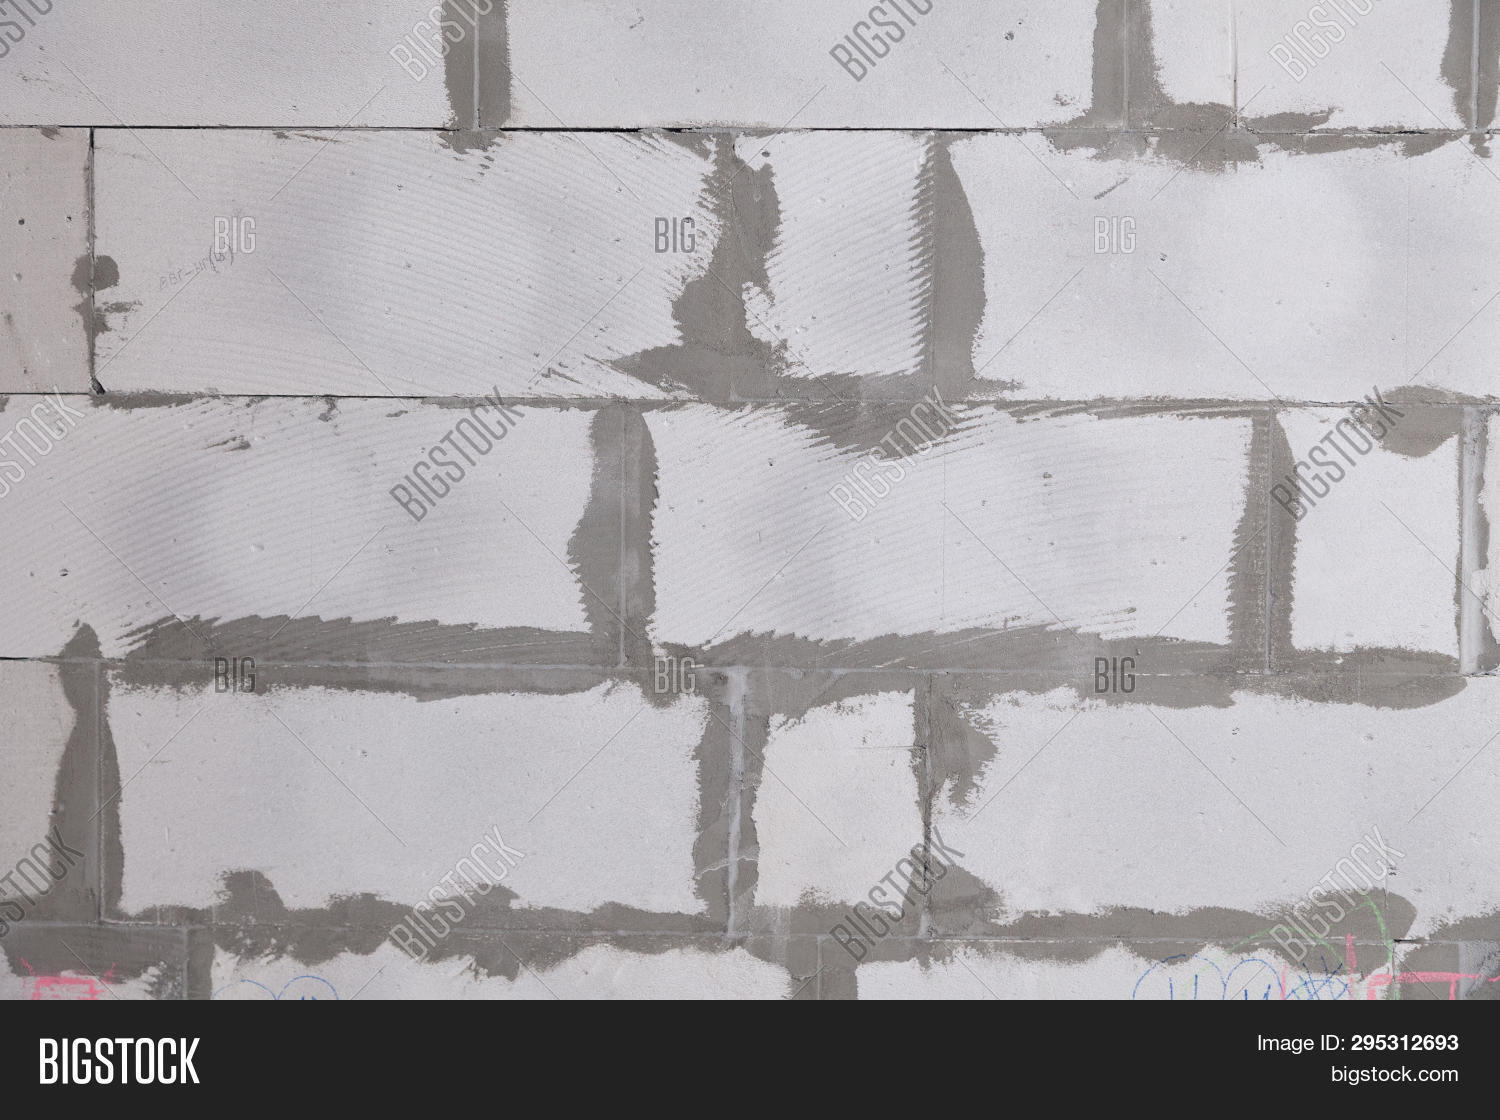 abstract,aerated,architecture,backdrop,background,block,brick,brickwork,build,building,cement,closeup,concrete,construction,creation,design,detail,foam,frame,gray,home,house,industrial,industry,light,lightweight,masonry,material,mortar,new,pattern,project,raw,rectangular,repair,rock,row,stone,structure,texture,wall,wallpaper,white,work